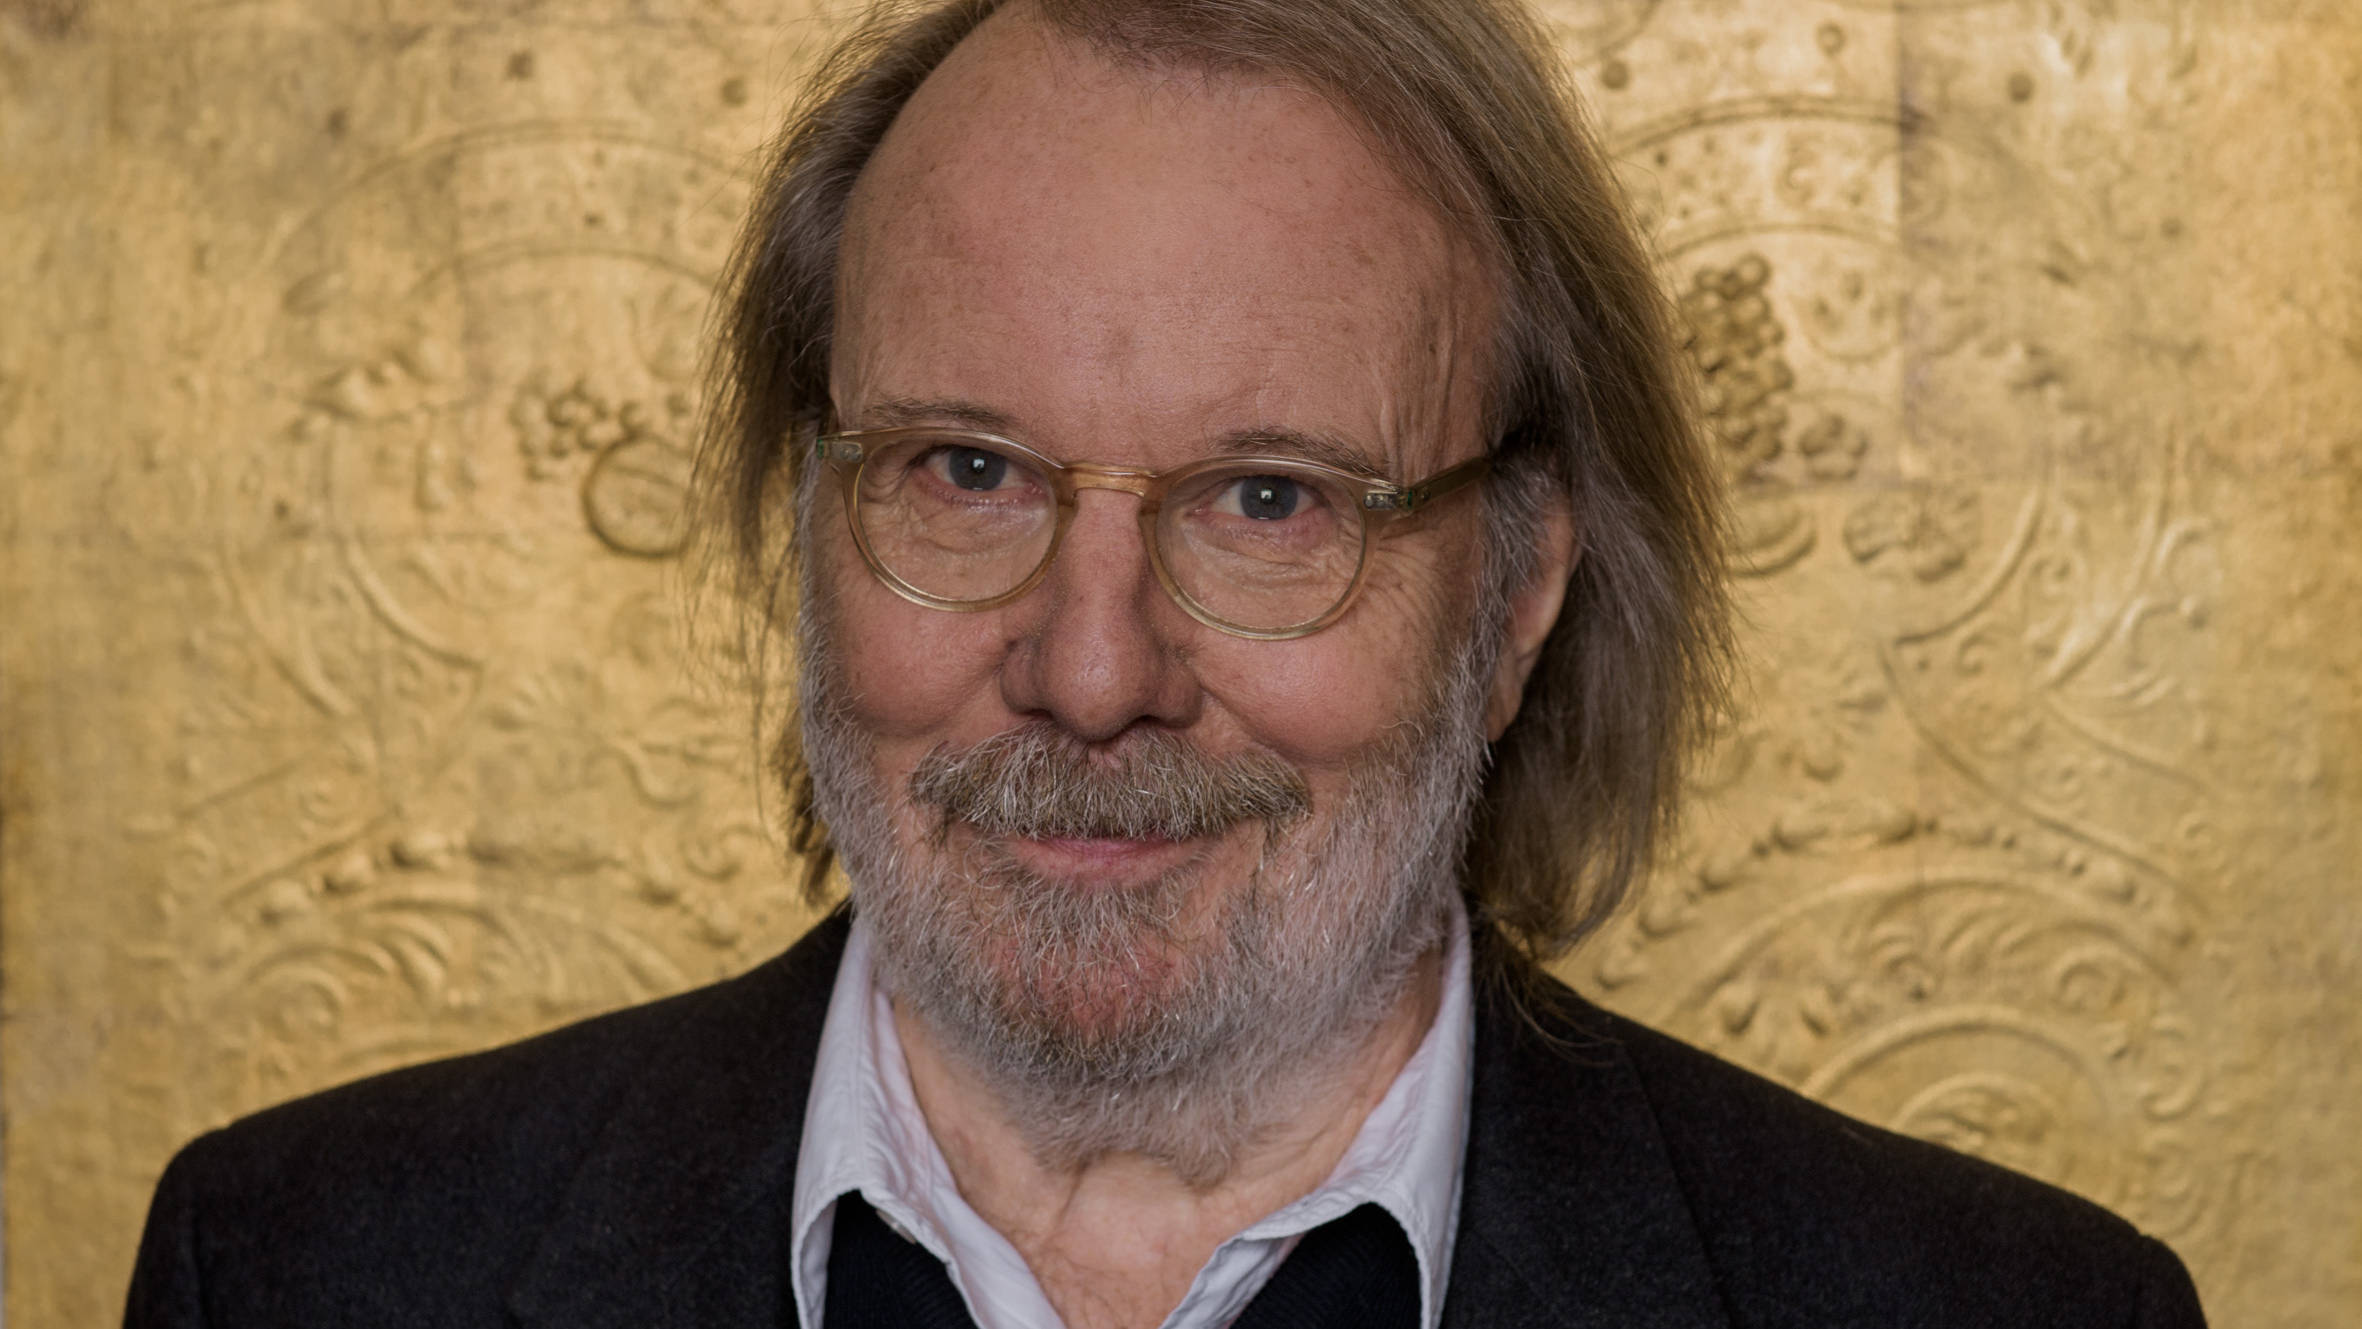 Benny Andersson Biography